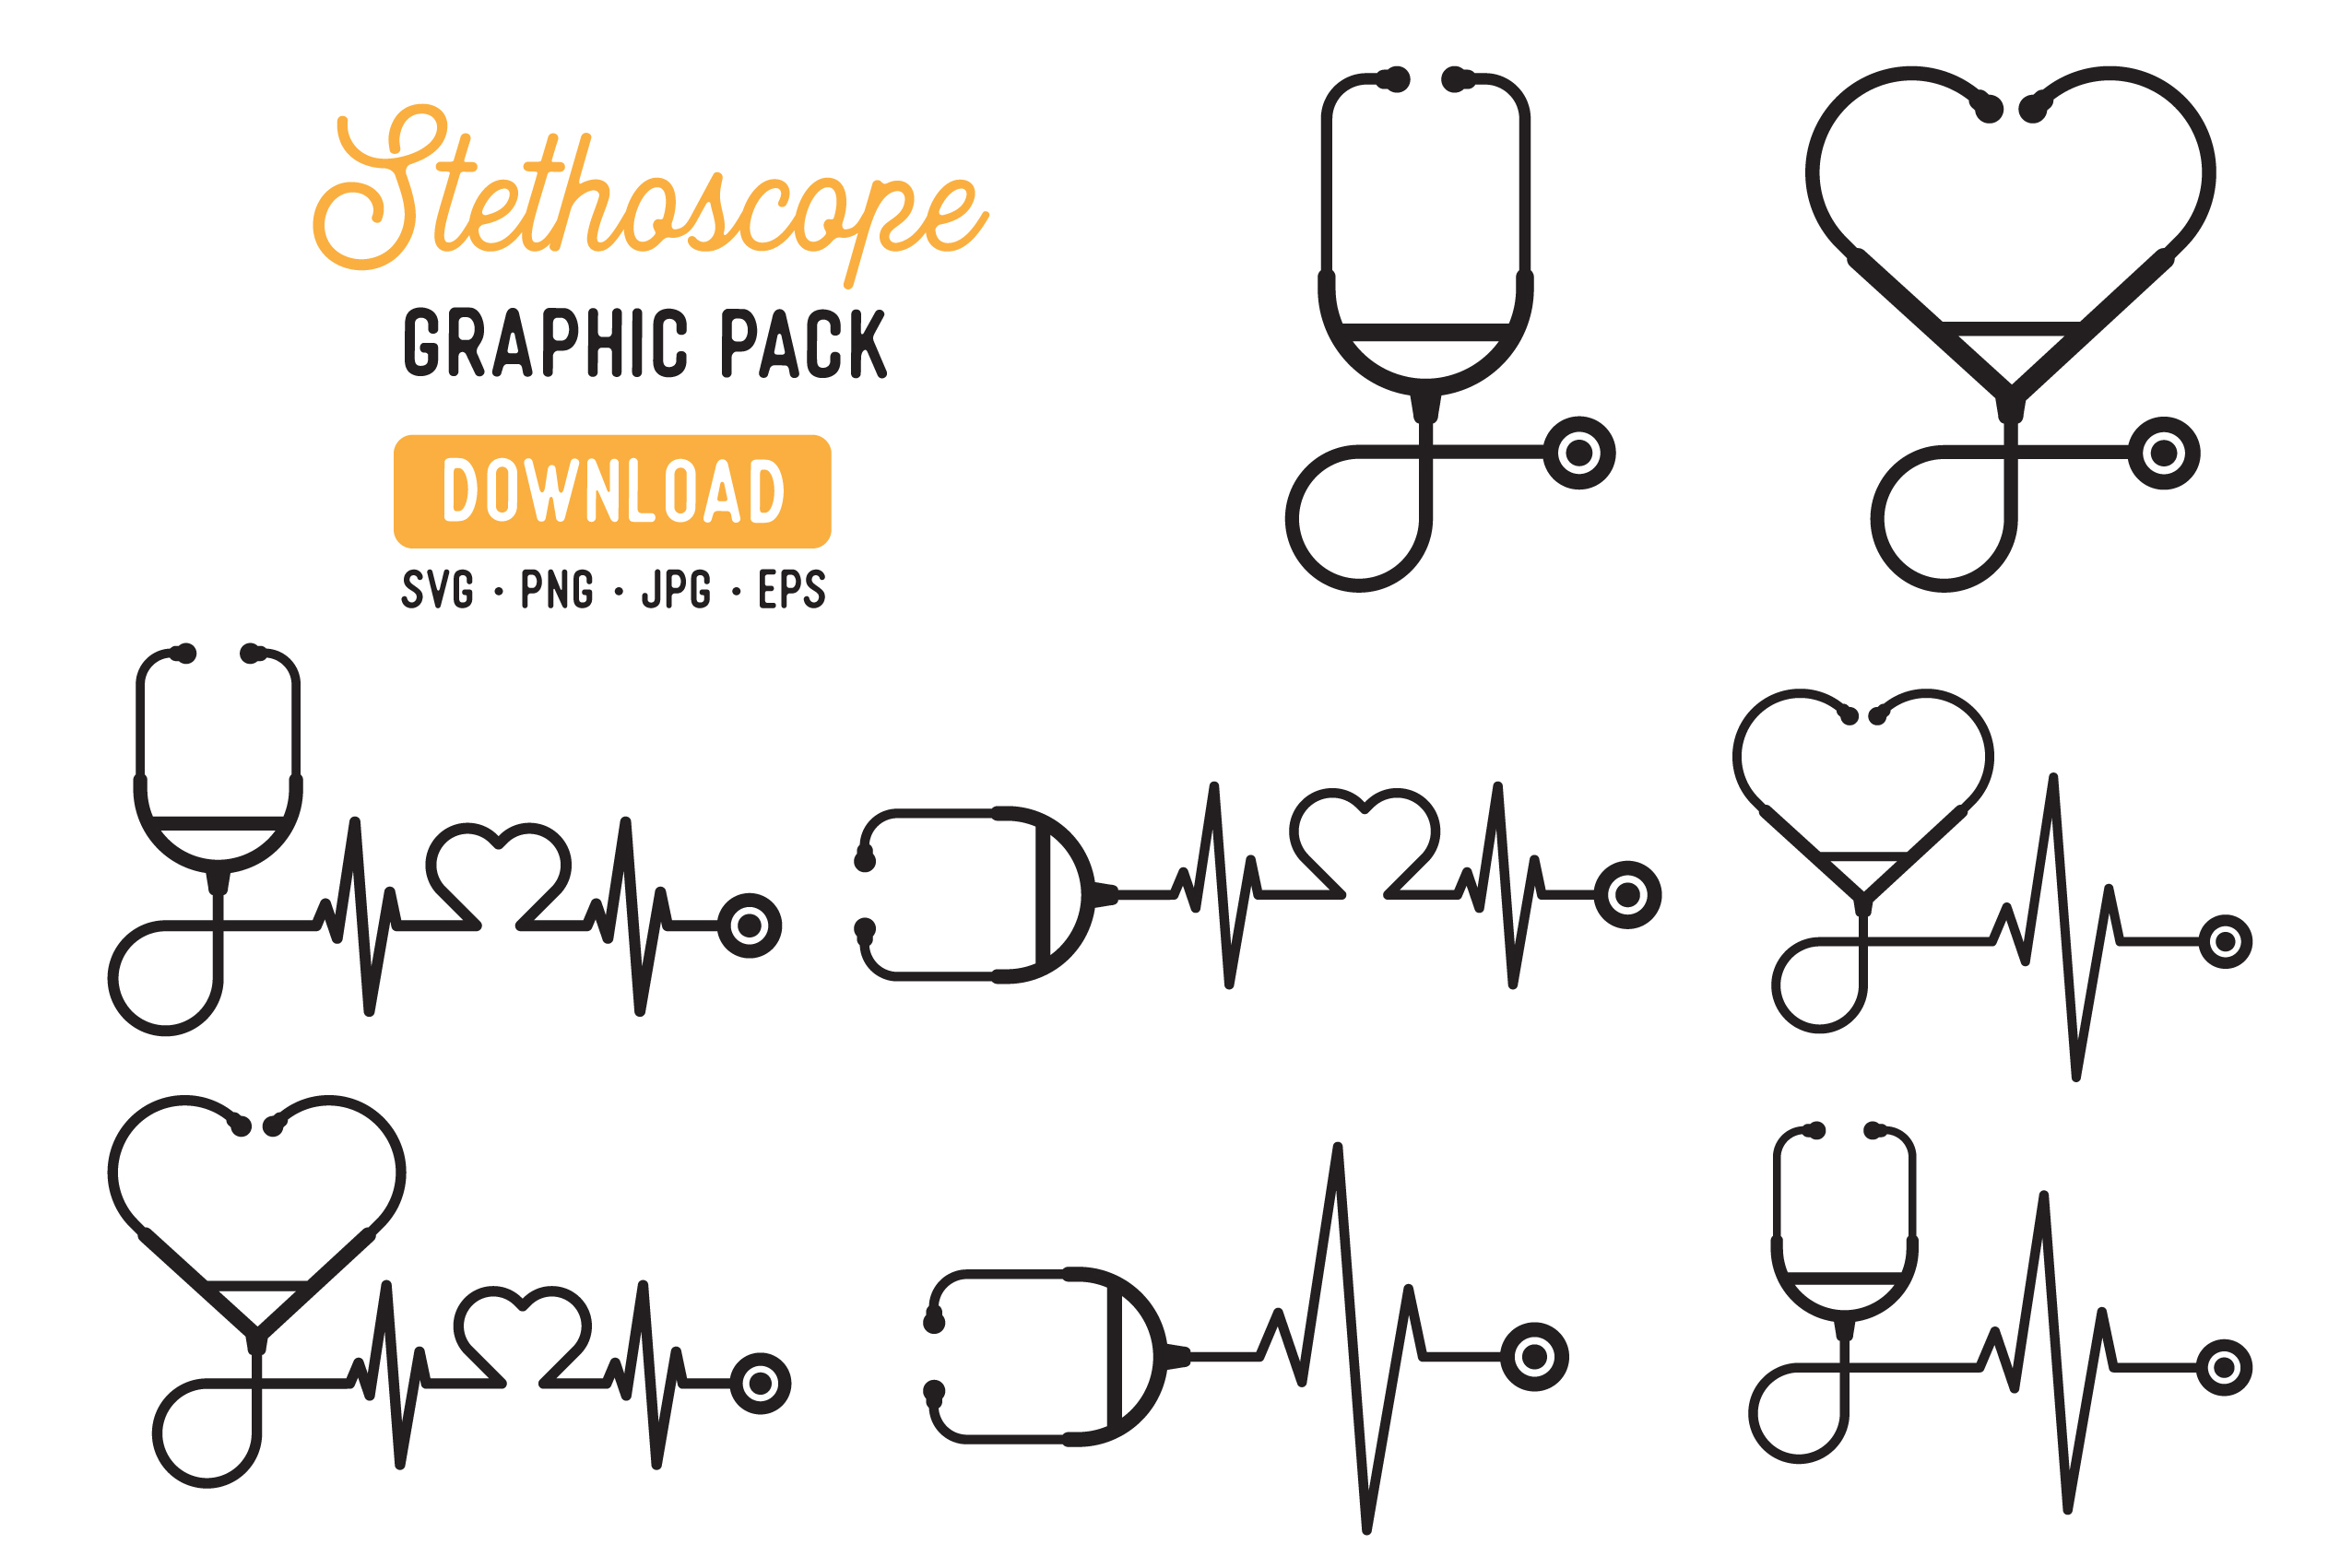 Download Free Stethoscope Vector Graphic Pack Graphic By The Gradient Fox for Cricut Explore, Silhouette and other cutting machines.